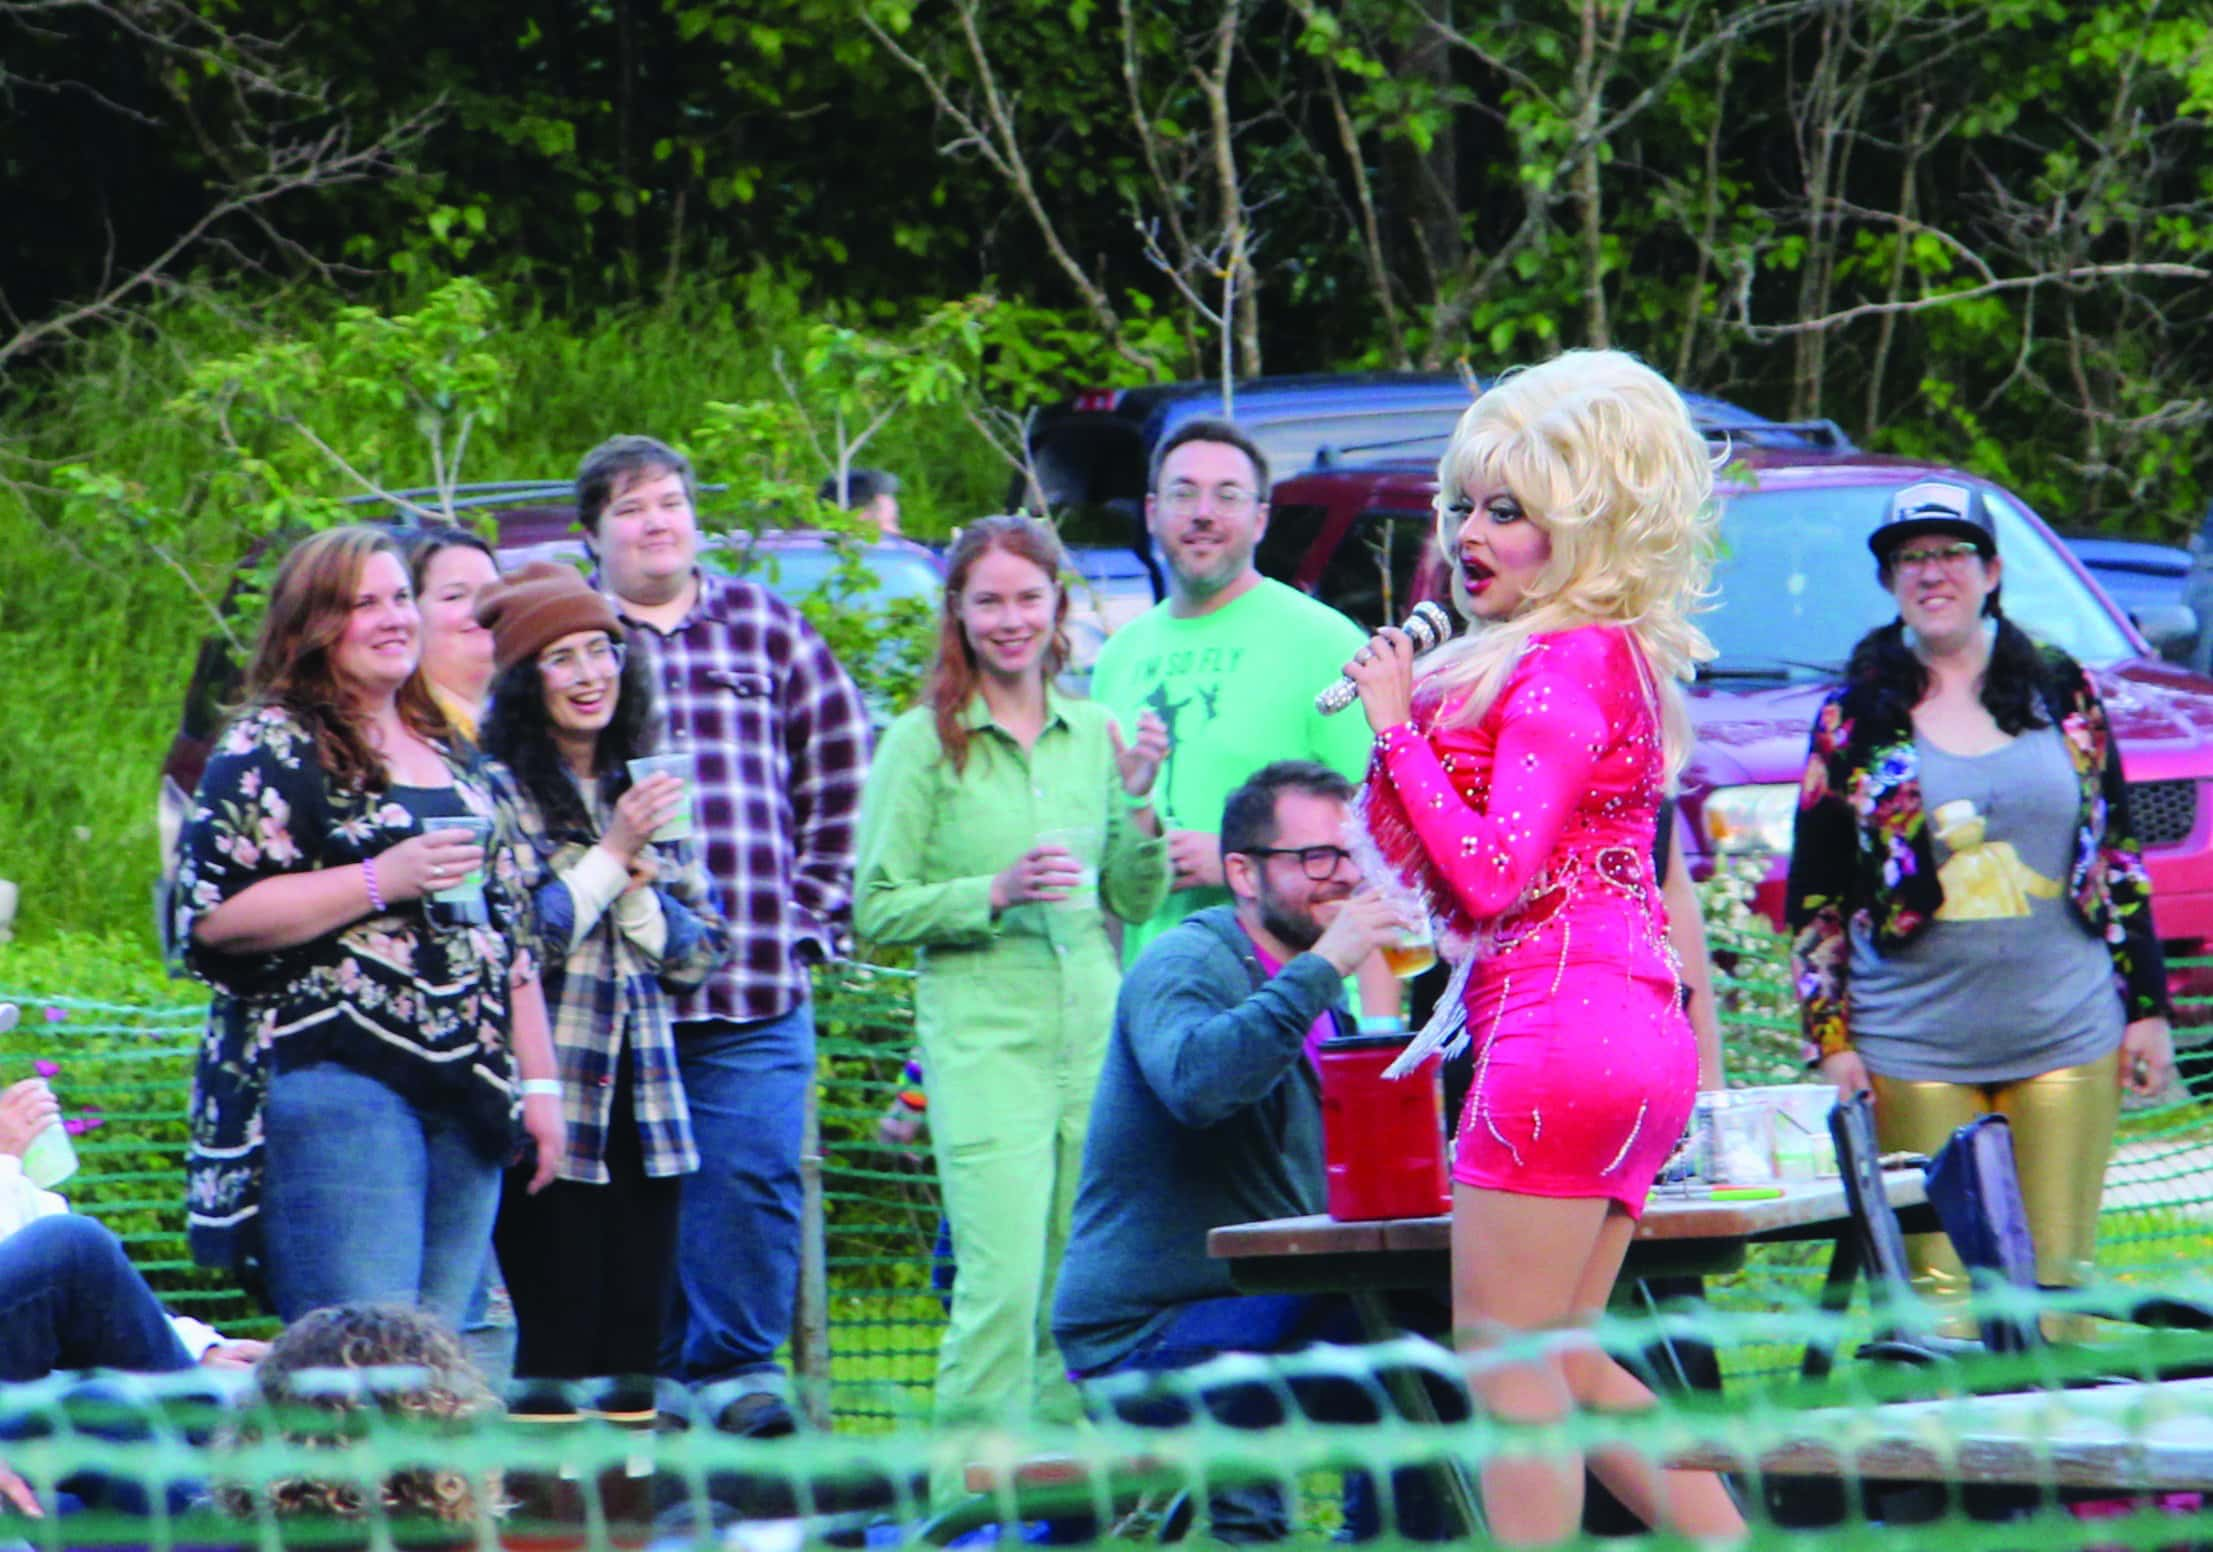 Juneau drag family gives stunning evening performance